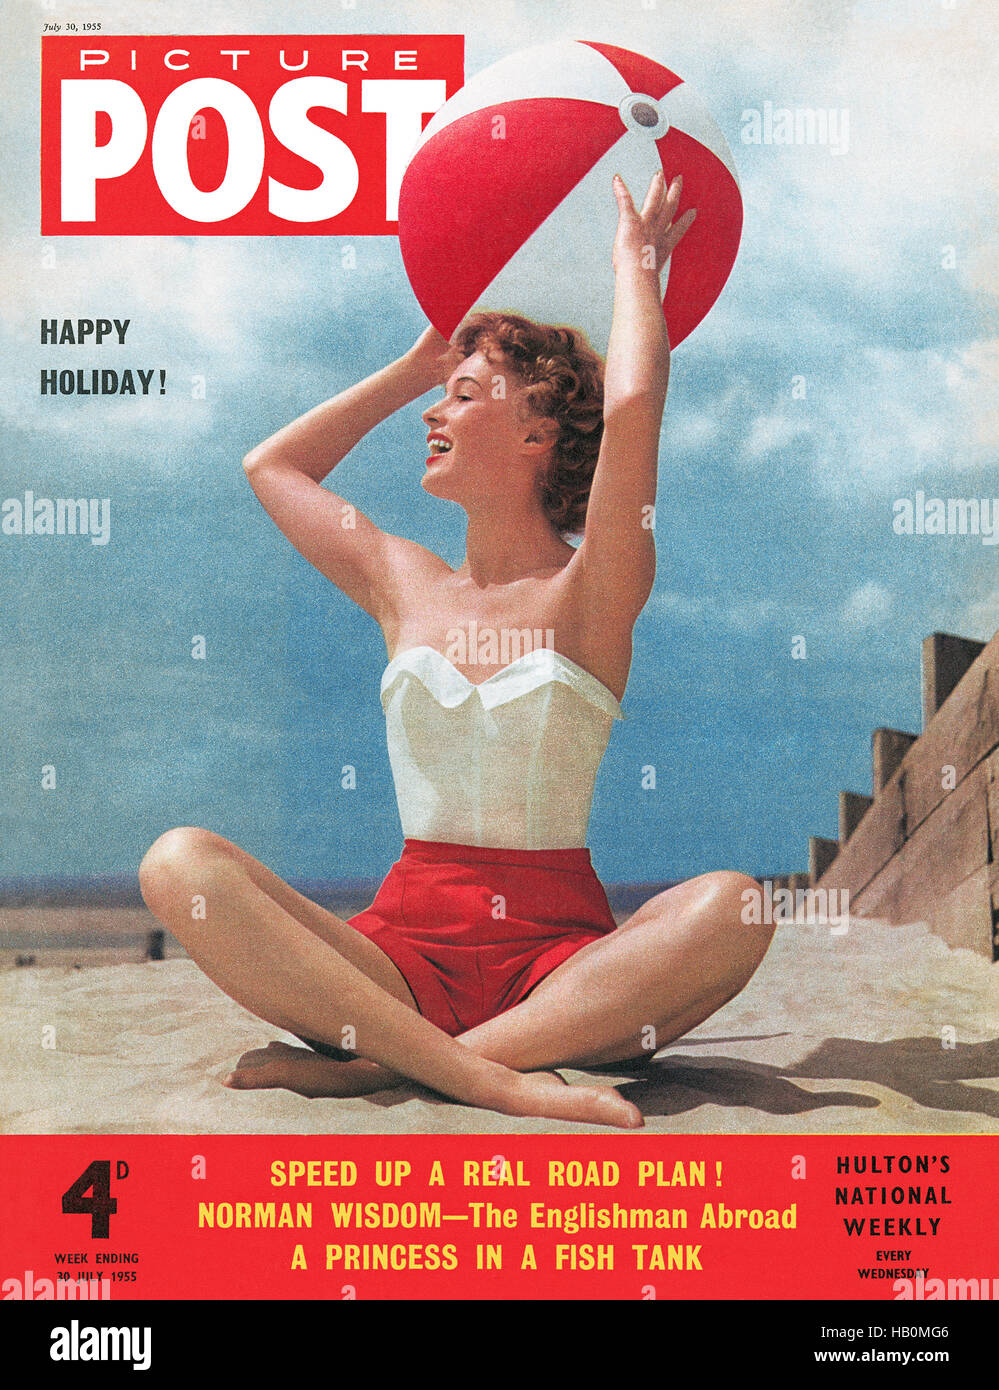 Front cover of Picture Post magazine for 30th July 1955, featuring model Jill Howard photographed by Neil Nimmo - Stock Image